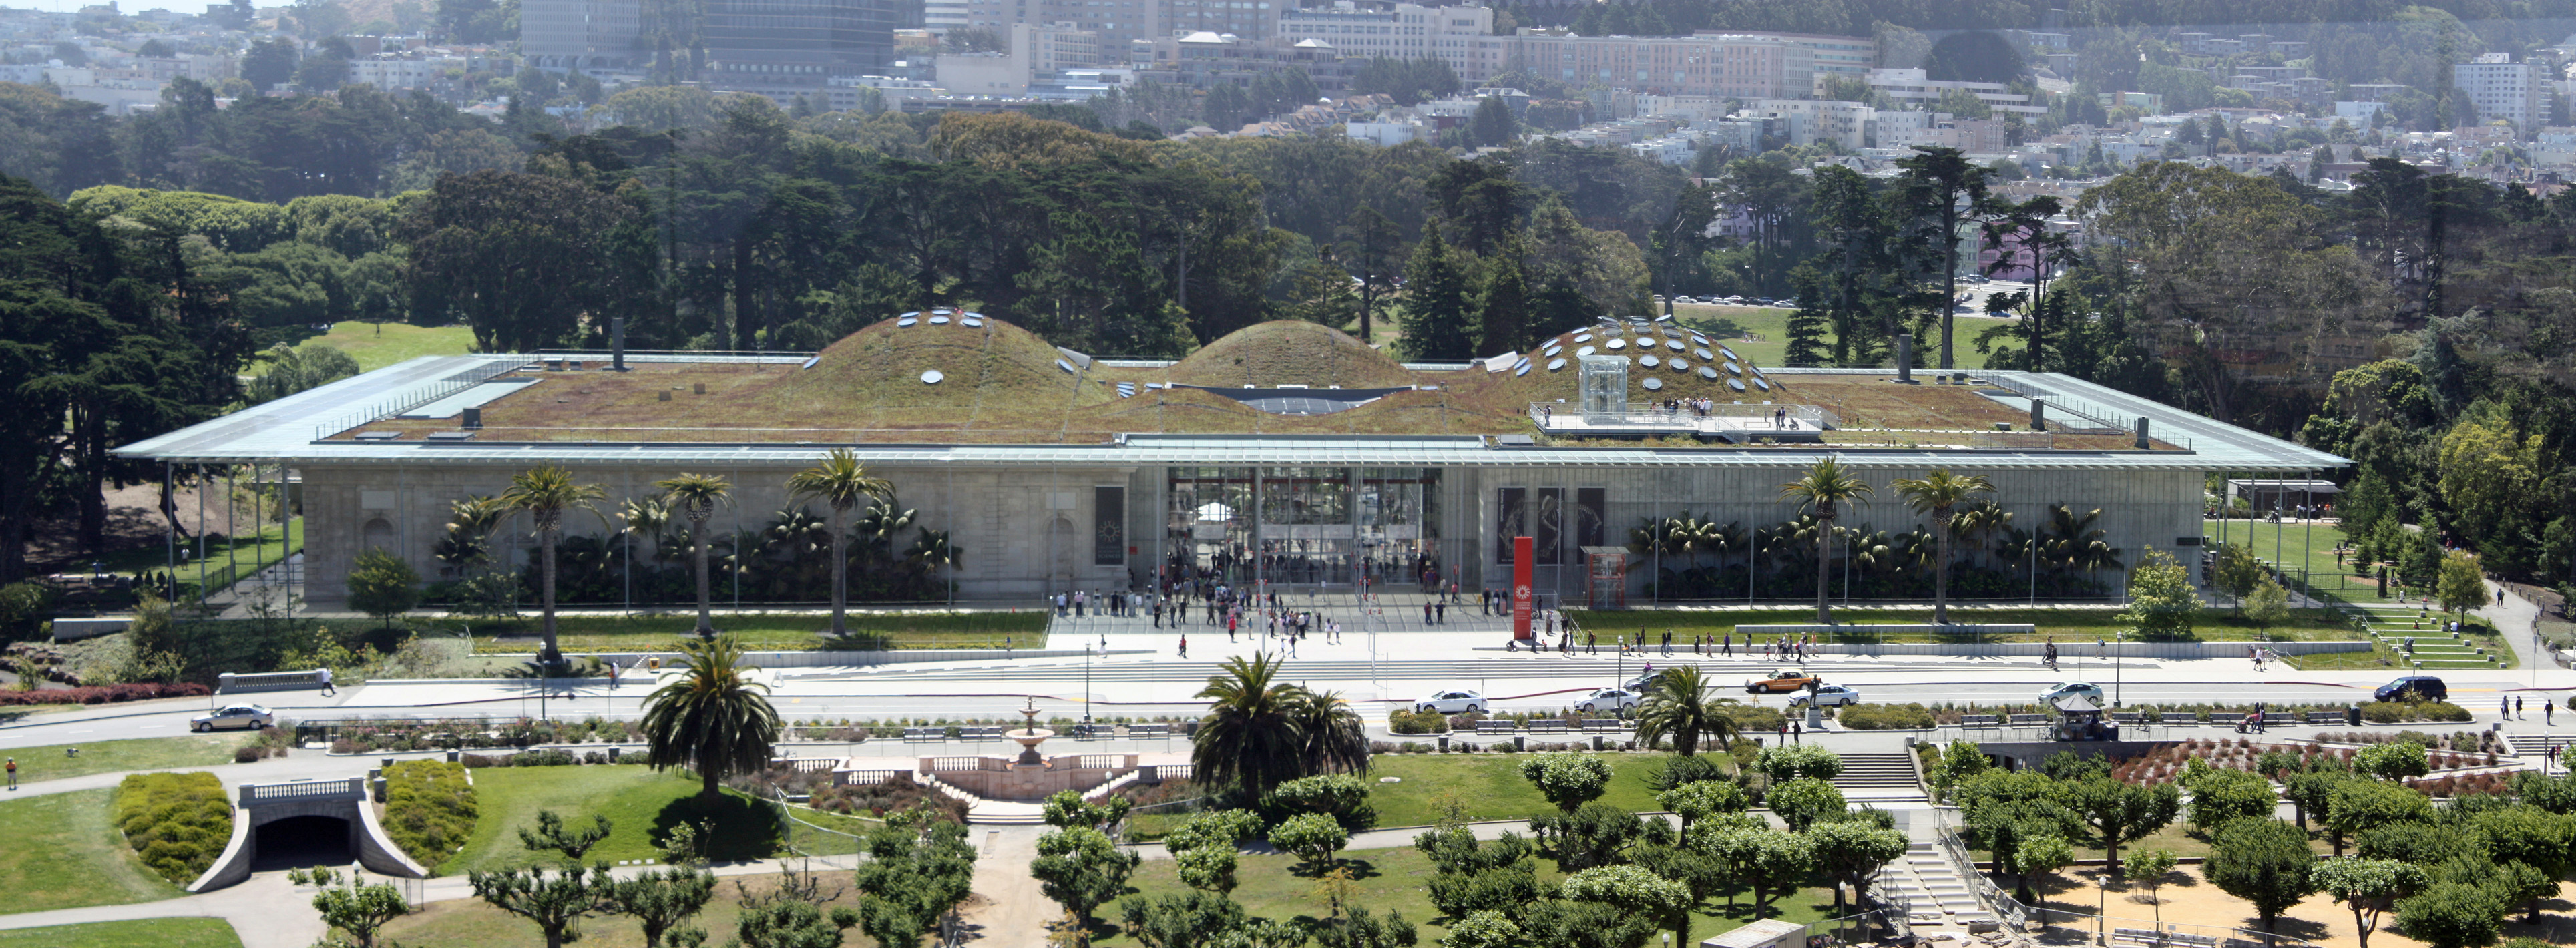 California_Academy_of_Sciences_pano